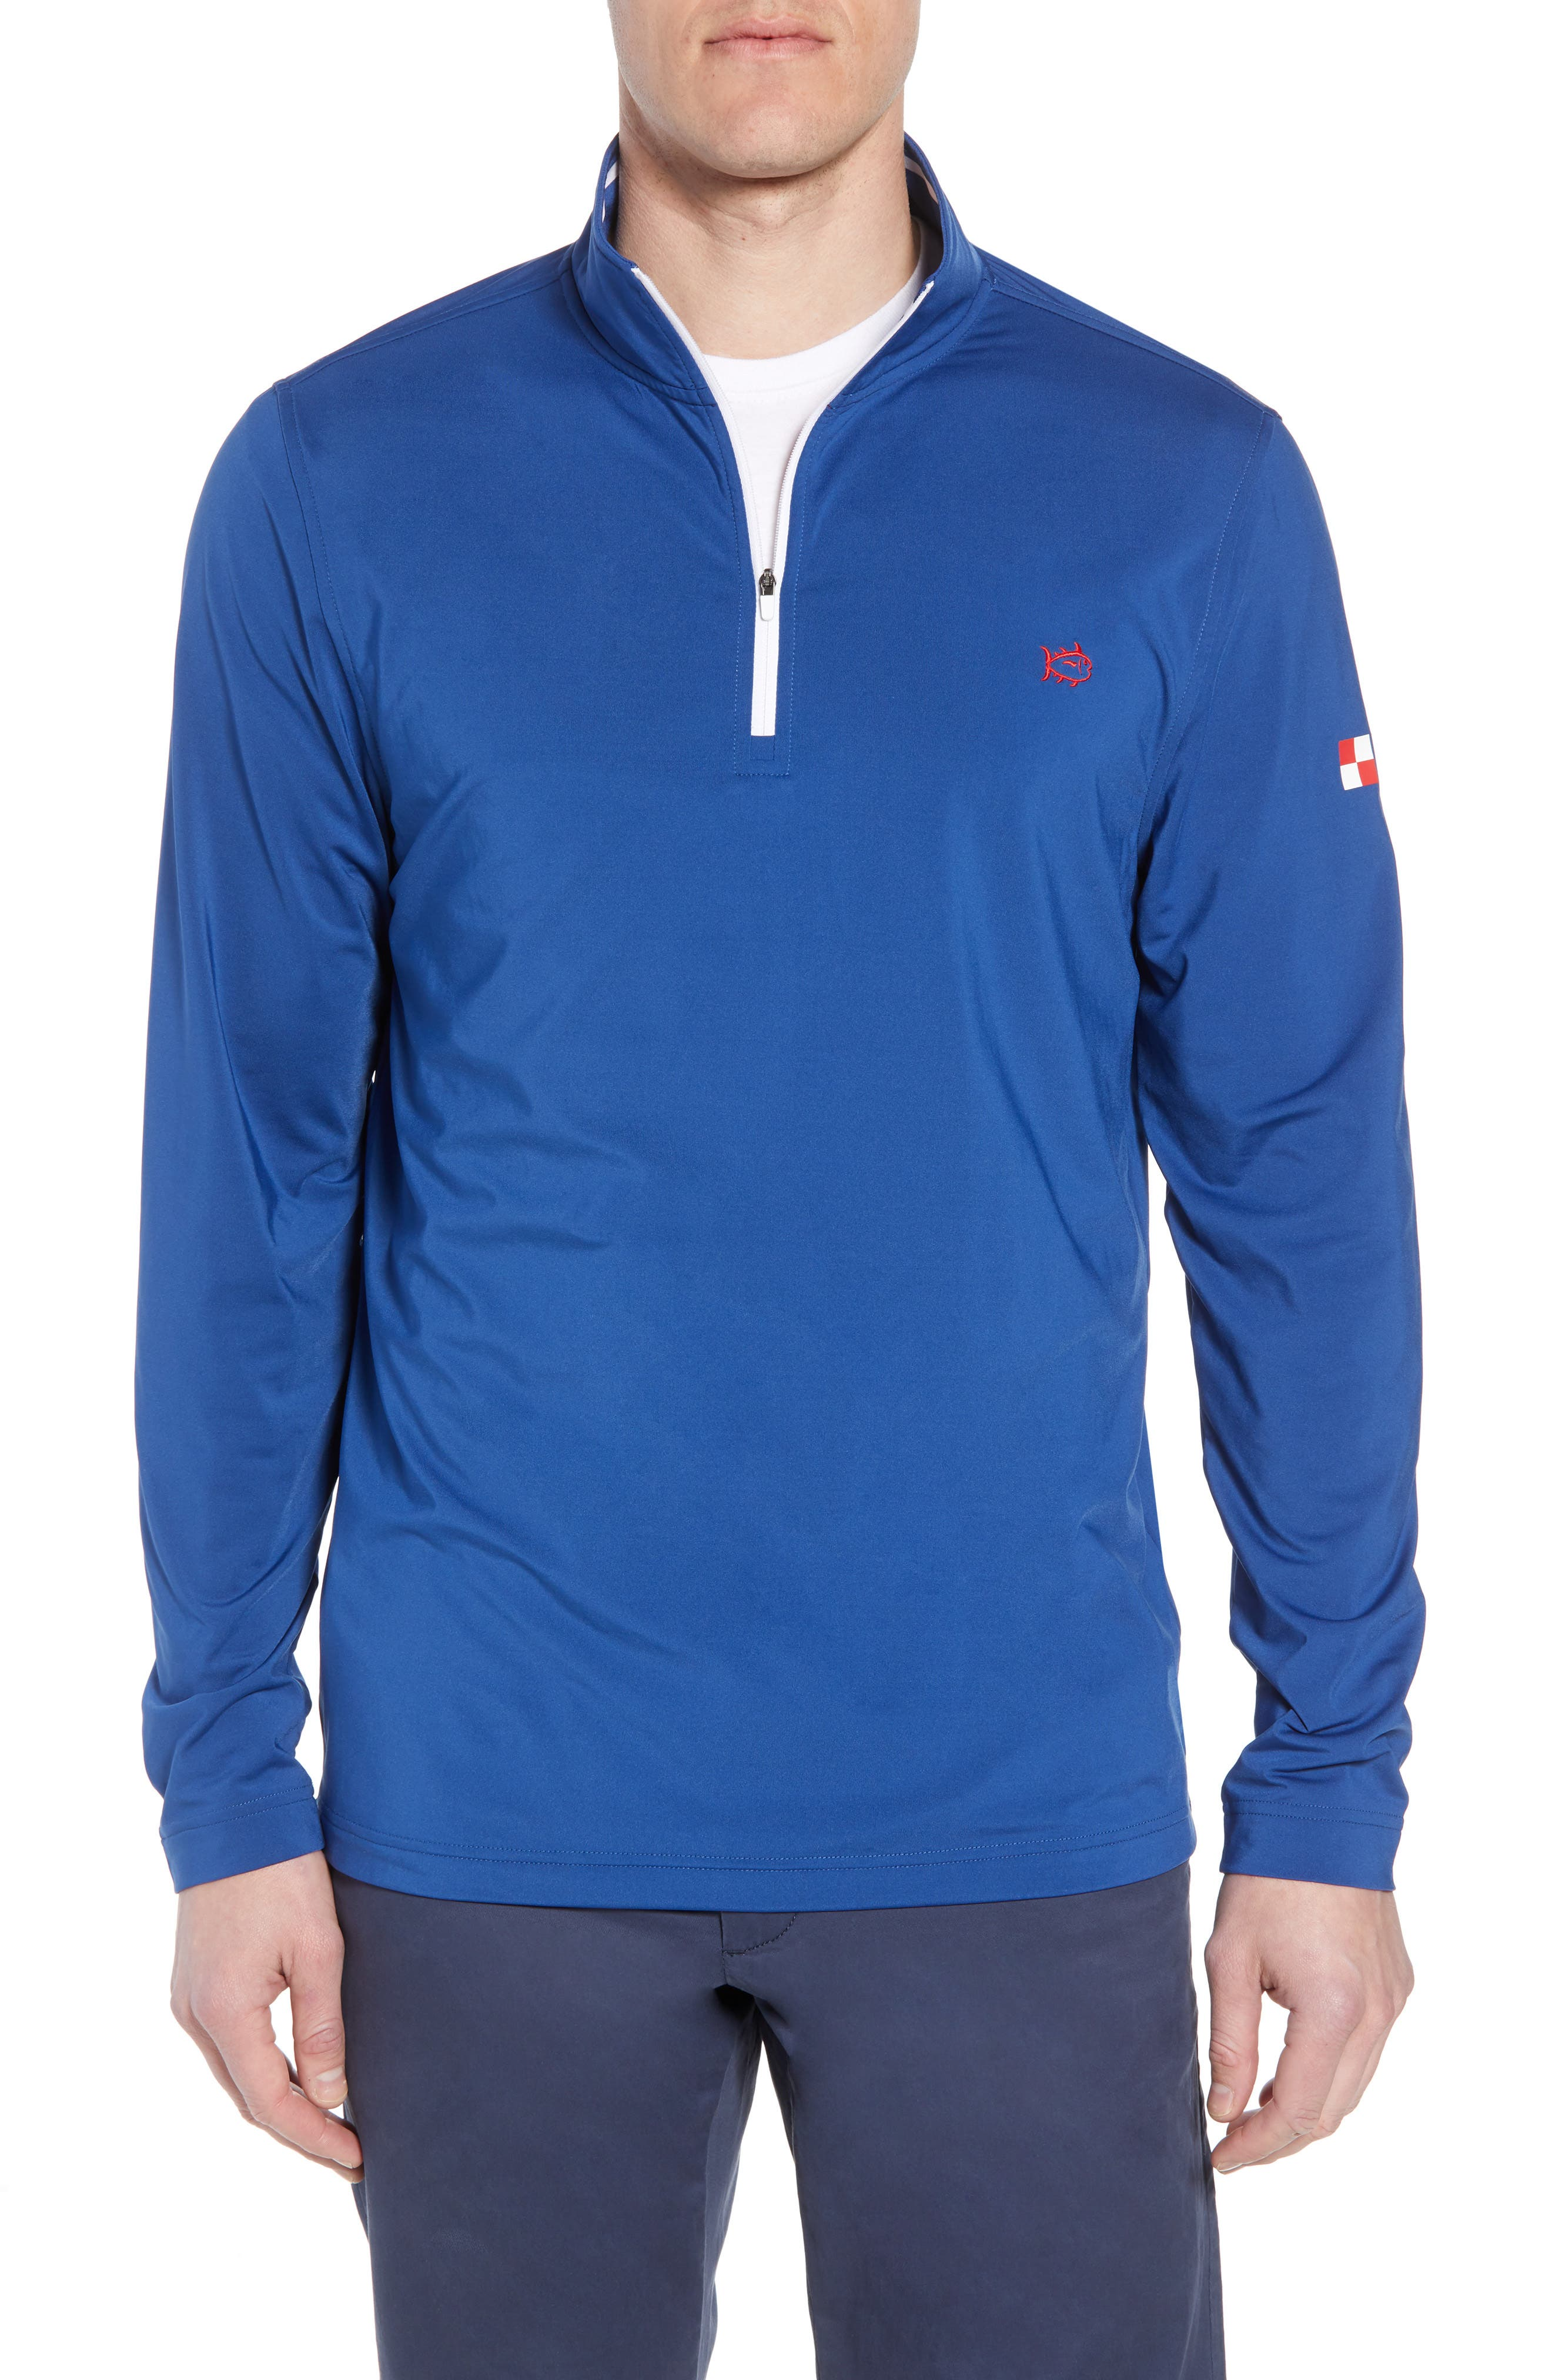 USA Performance Quarter-Zip Pullover,                             Main thumbnail 1, color,                             400